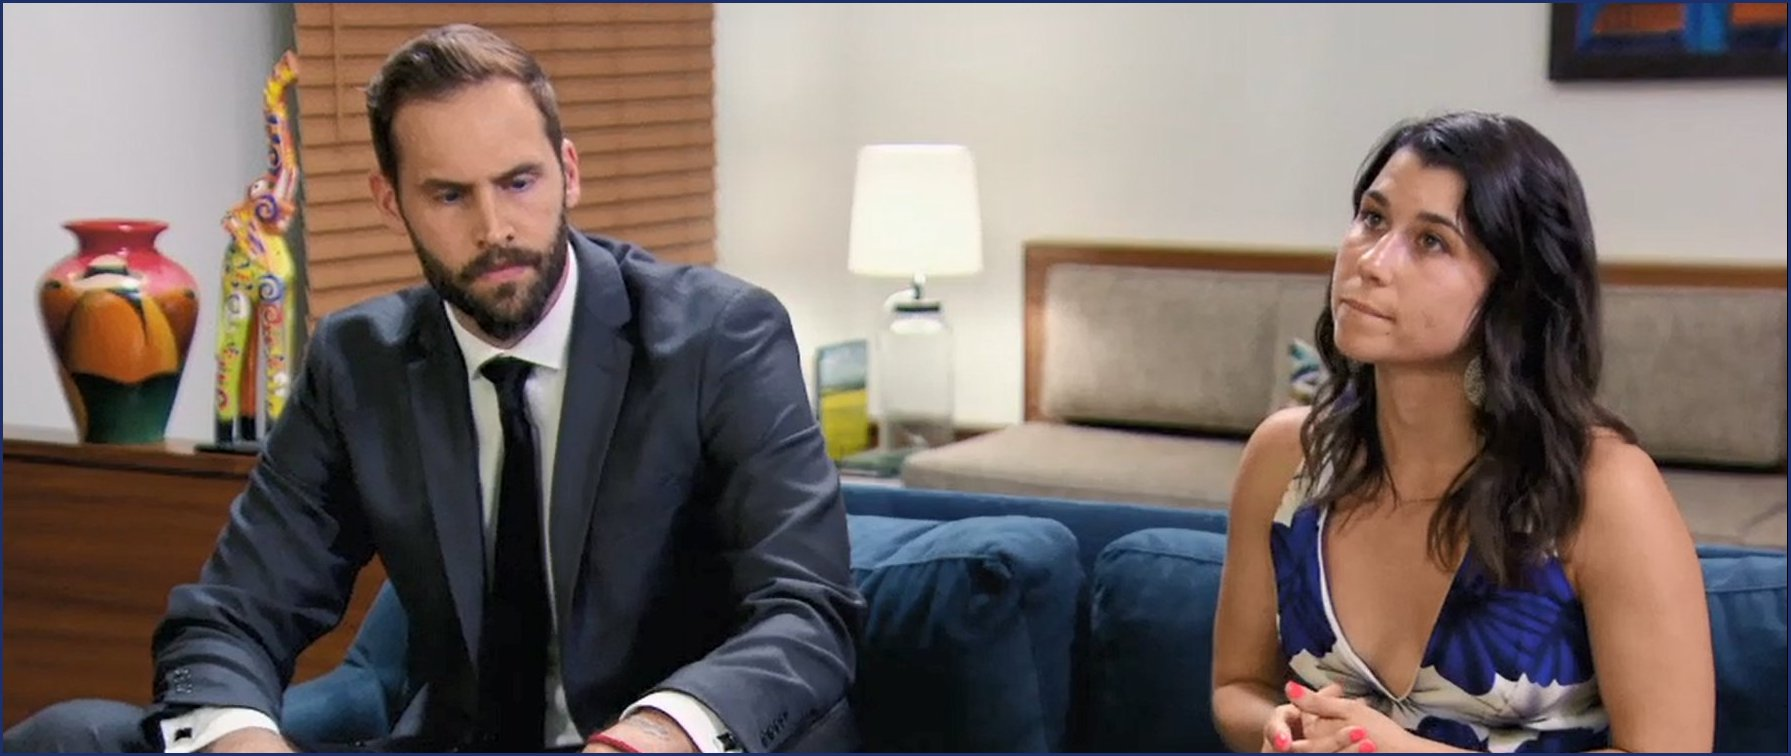 married at first sight season 9 episode 13